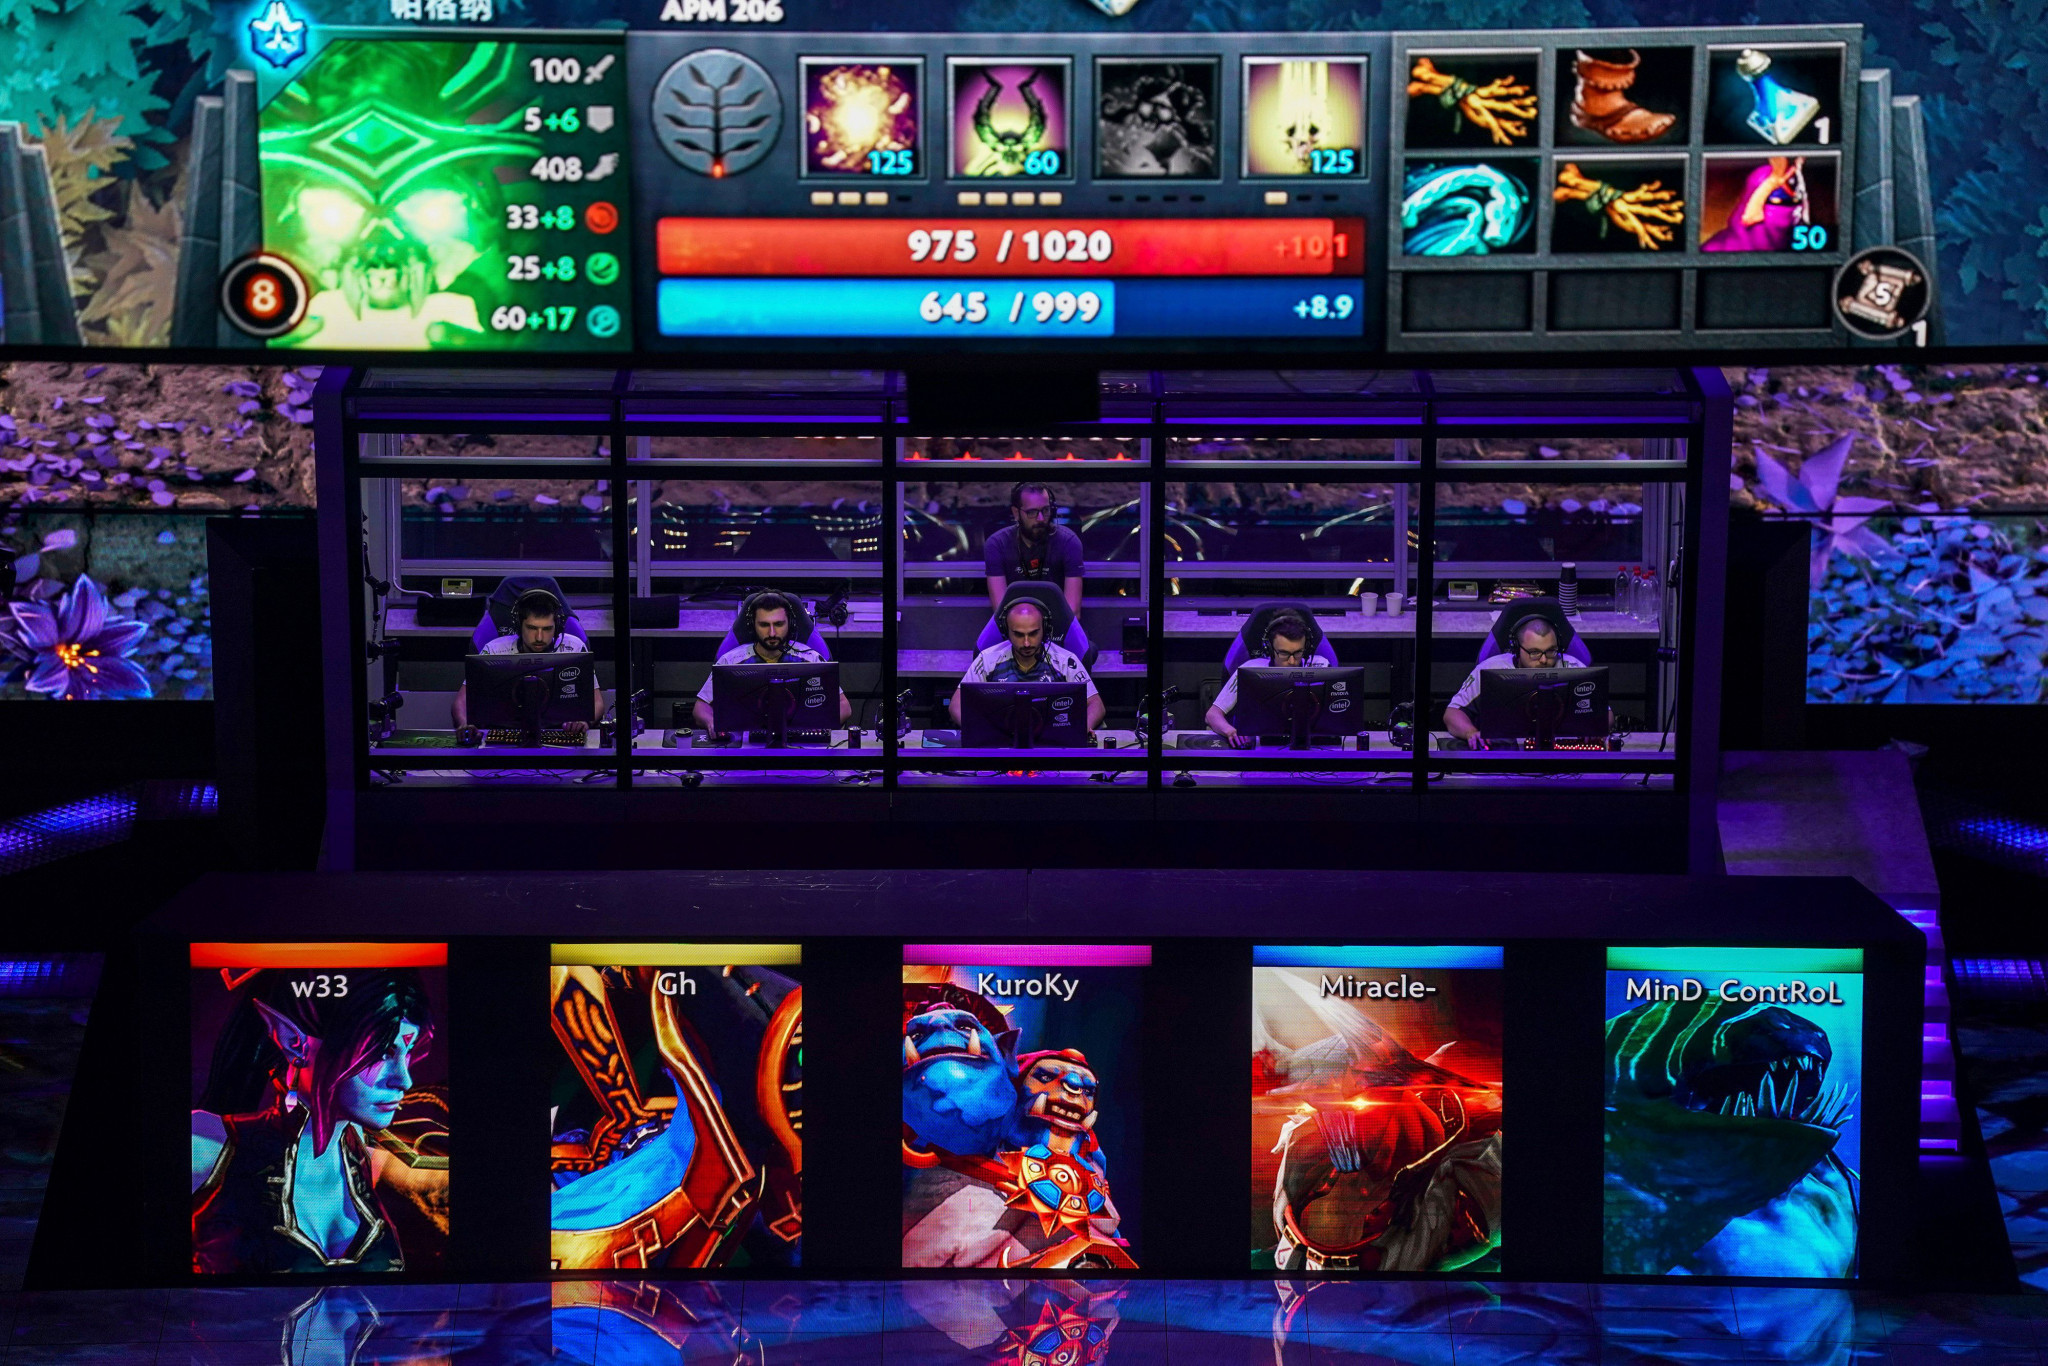 Beijing announce plans to support esports industry after coronavirus impact